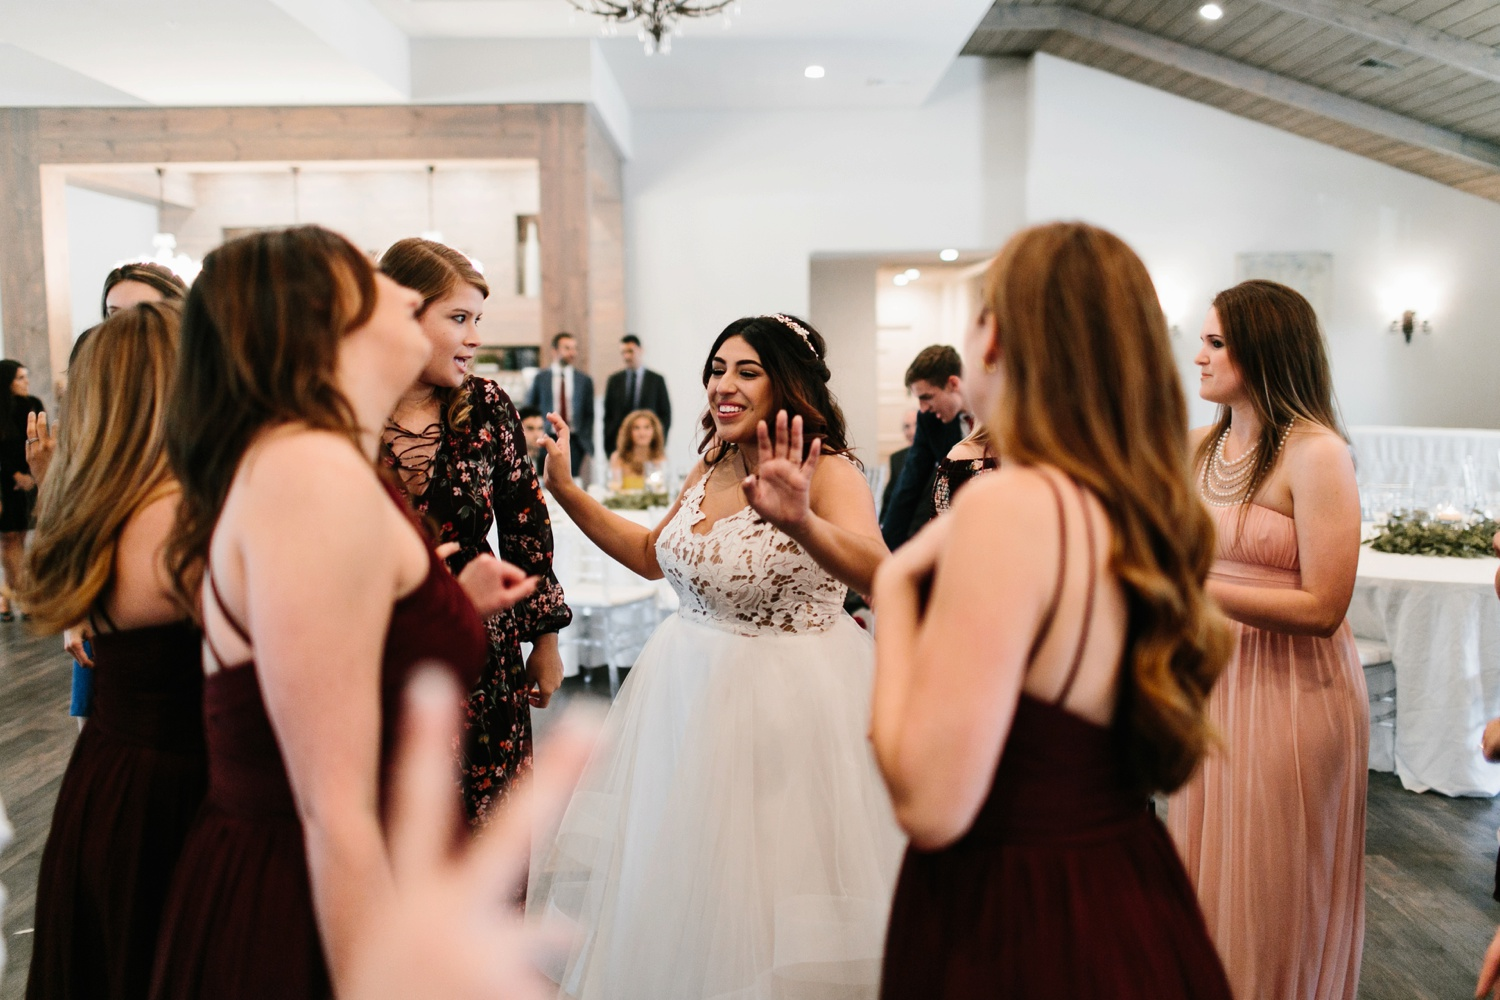 Grant + Lysette | a vibrant, deep burgundy and navy, and mixed metals wedding at Hidden Pines Chapel by North Texas Wedding Photographer Rachel Meagan Photography 183